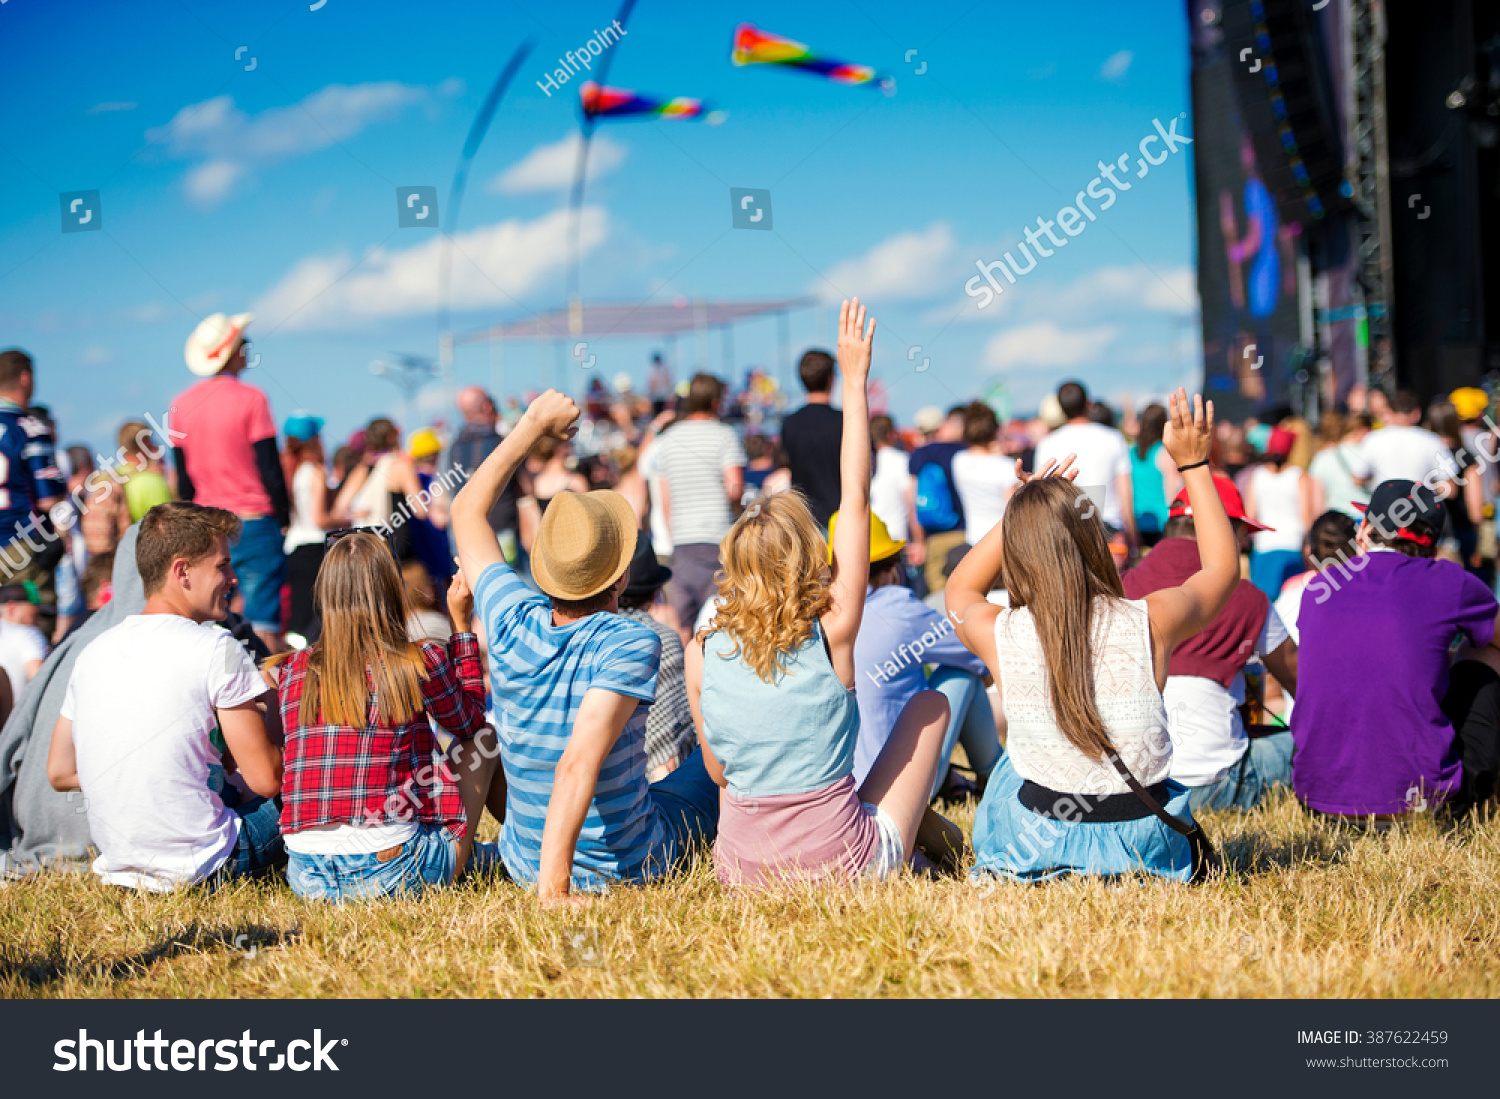 Teenagers, summer music festival, sitting in front of stage #387622459